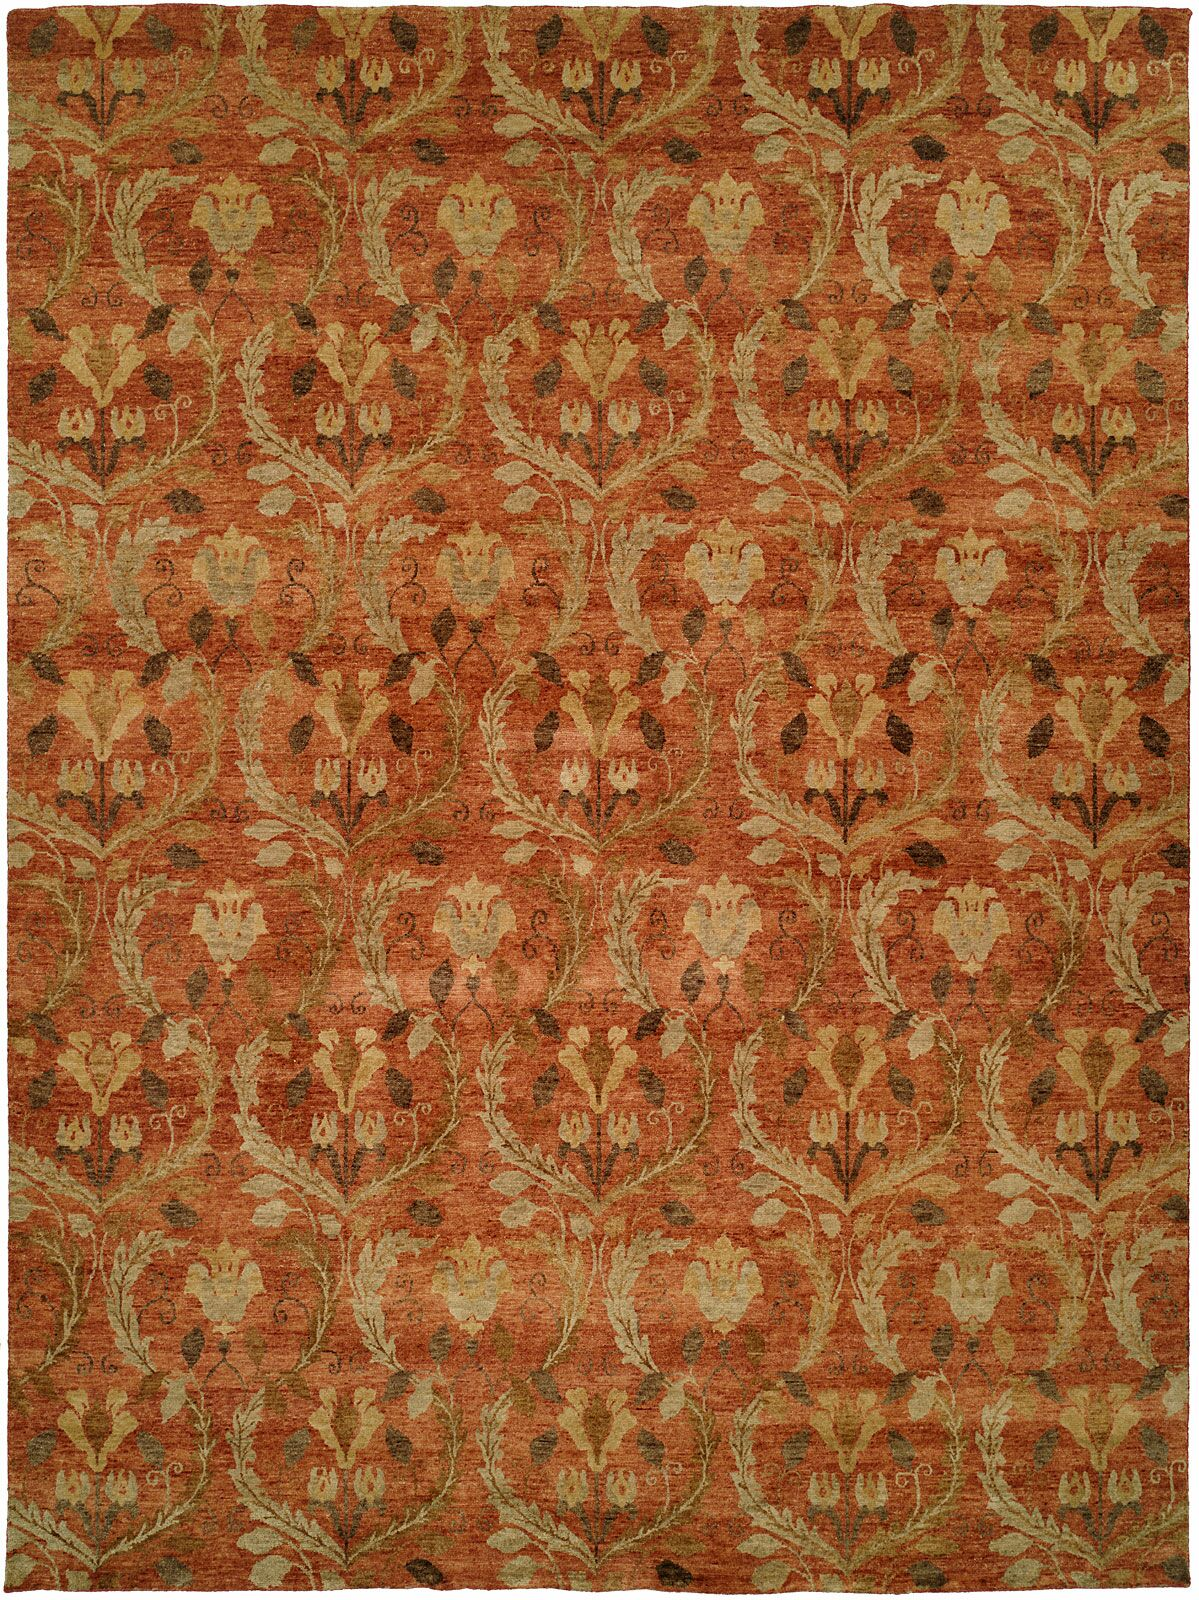 Keelung Hand-Knotted Rust Area Rug Rug Size: Runner 2'6